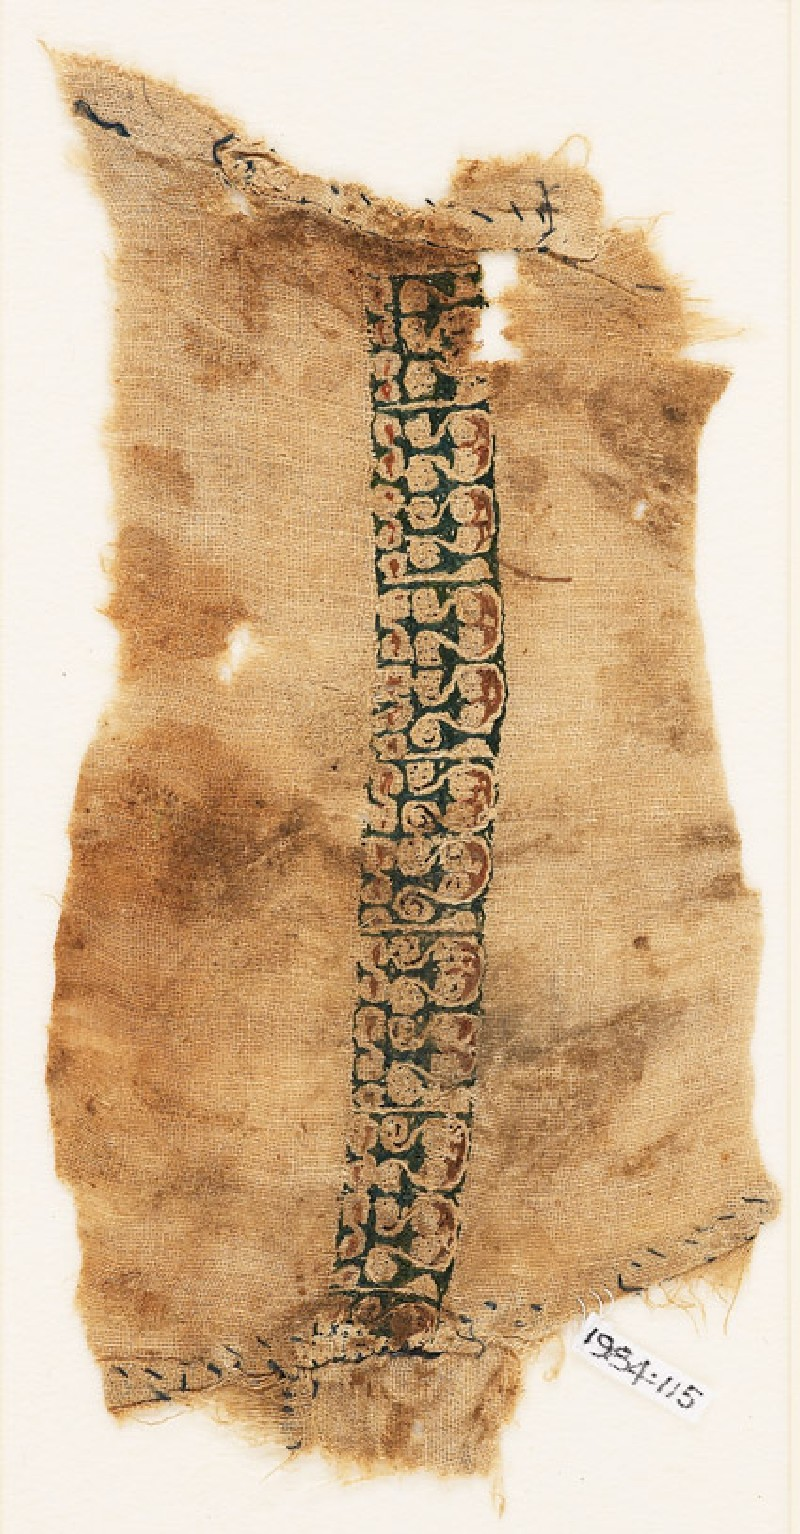 Textile fragment with calligraphic band, possibly from a tunic